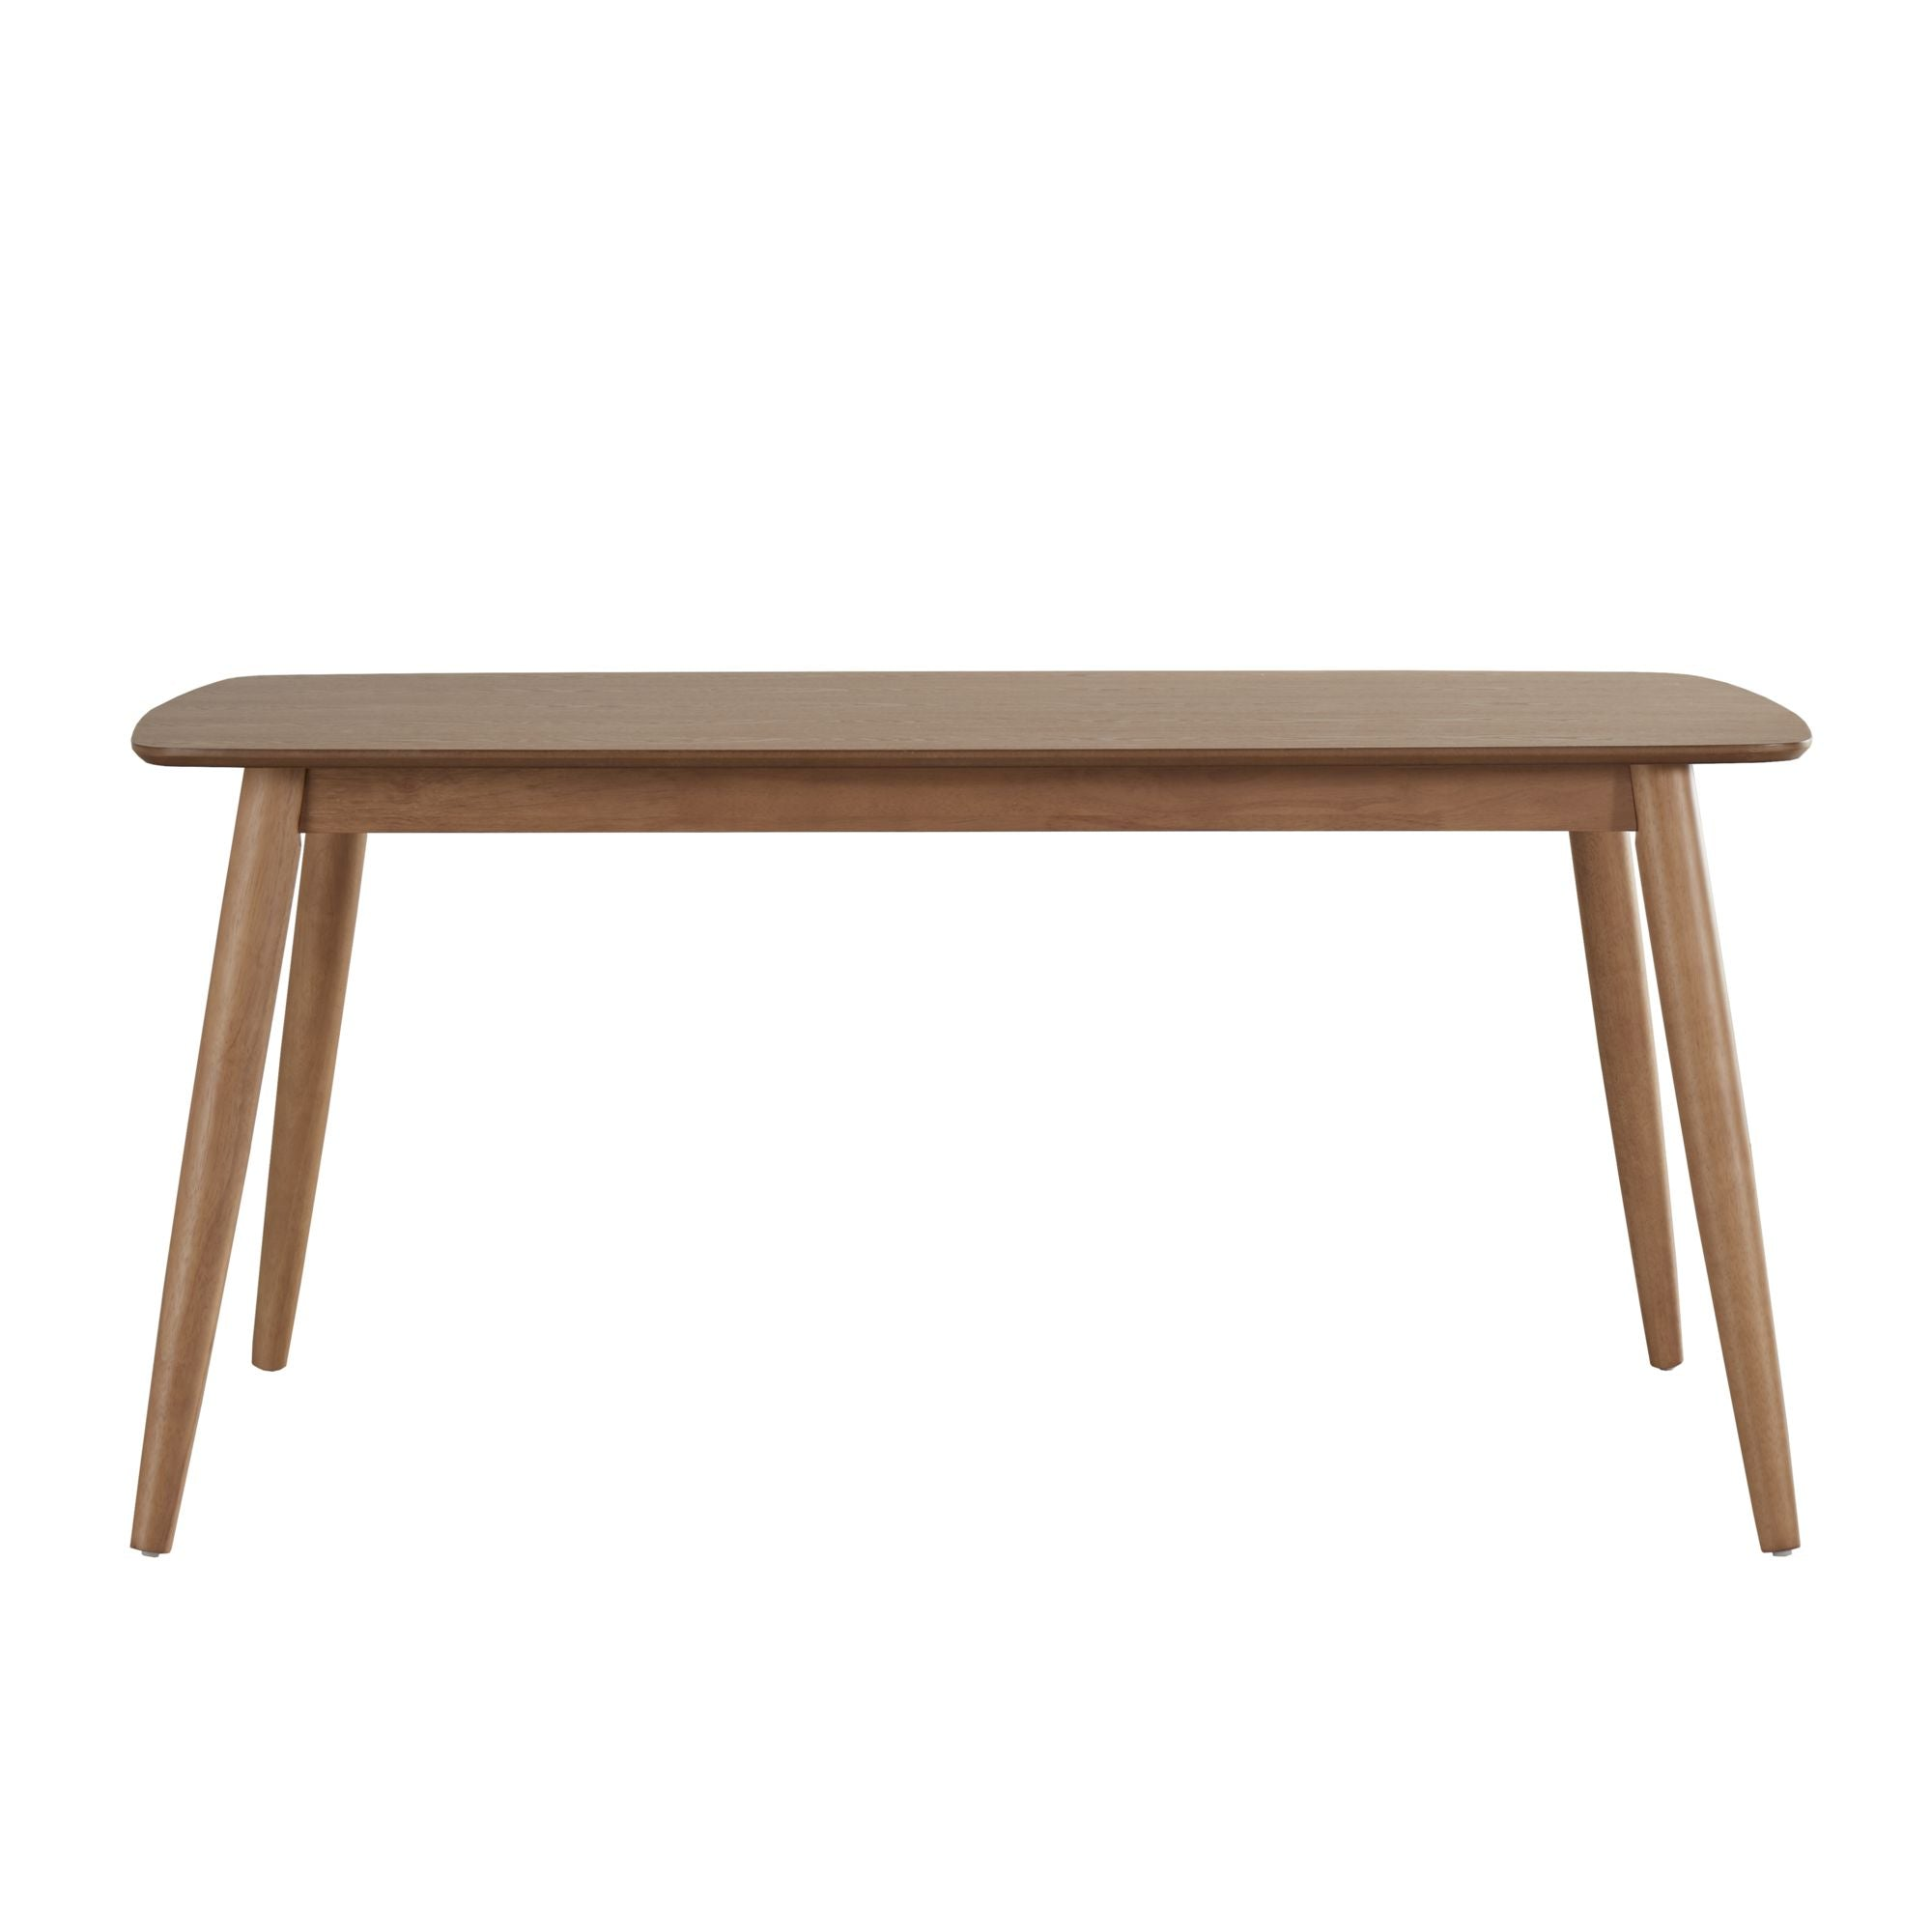 Mid-Century Modern Tapered Dining Table - Natural Finish, 63-inch